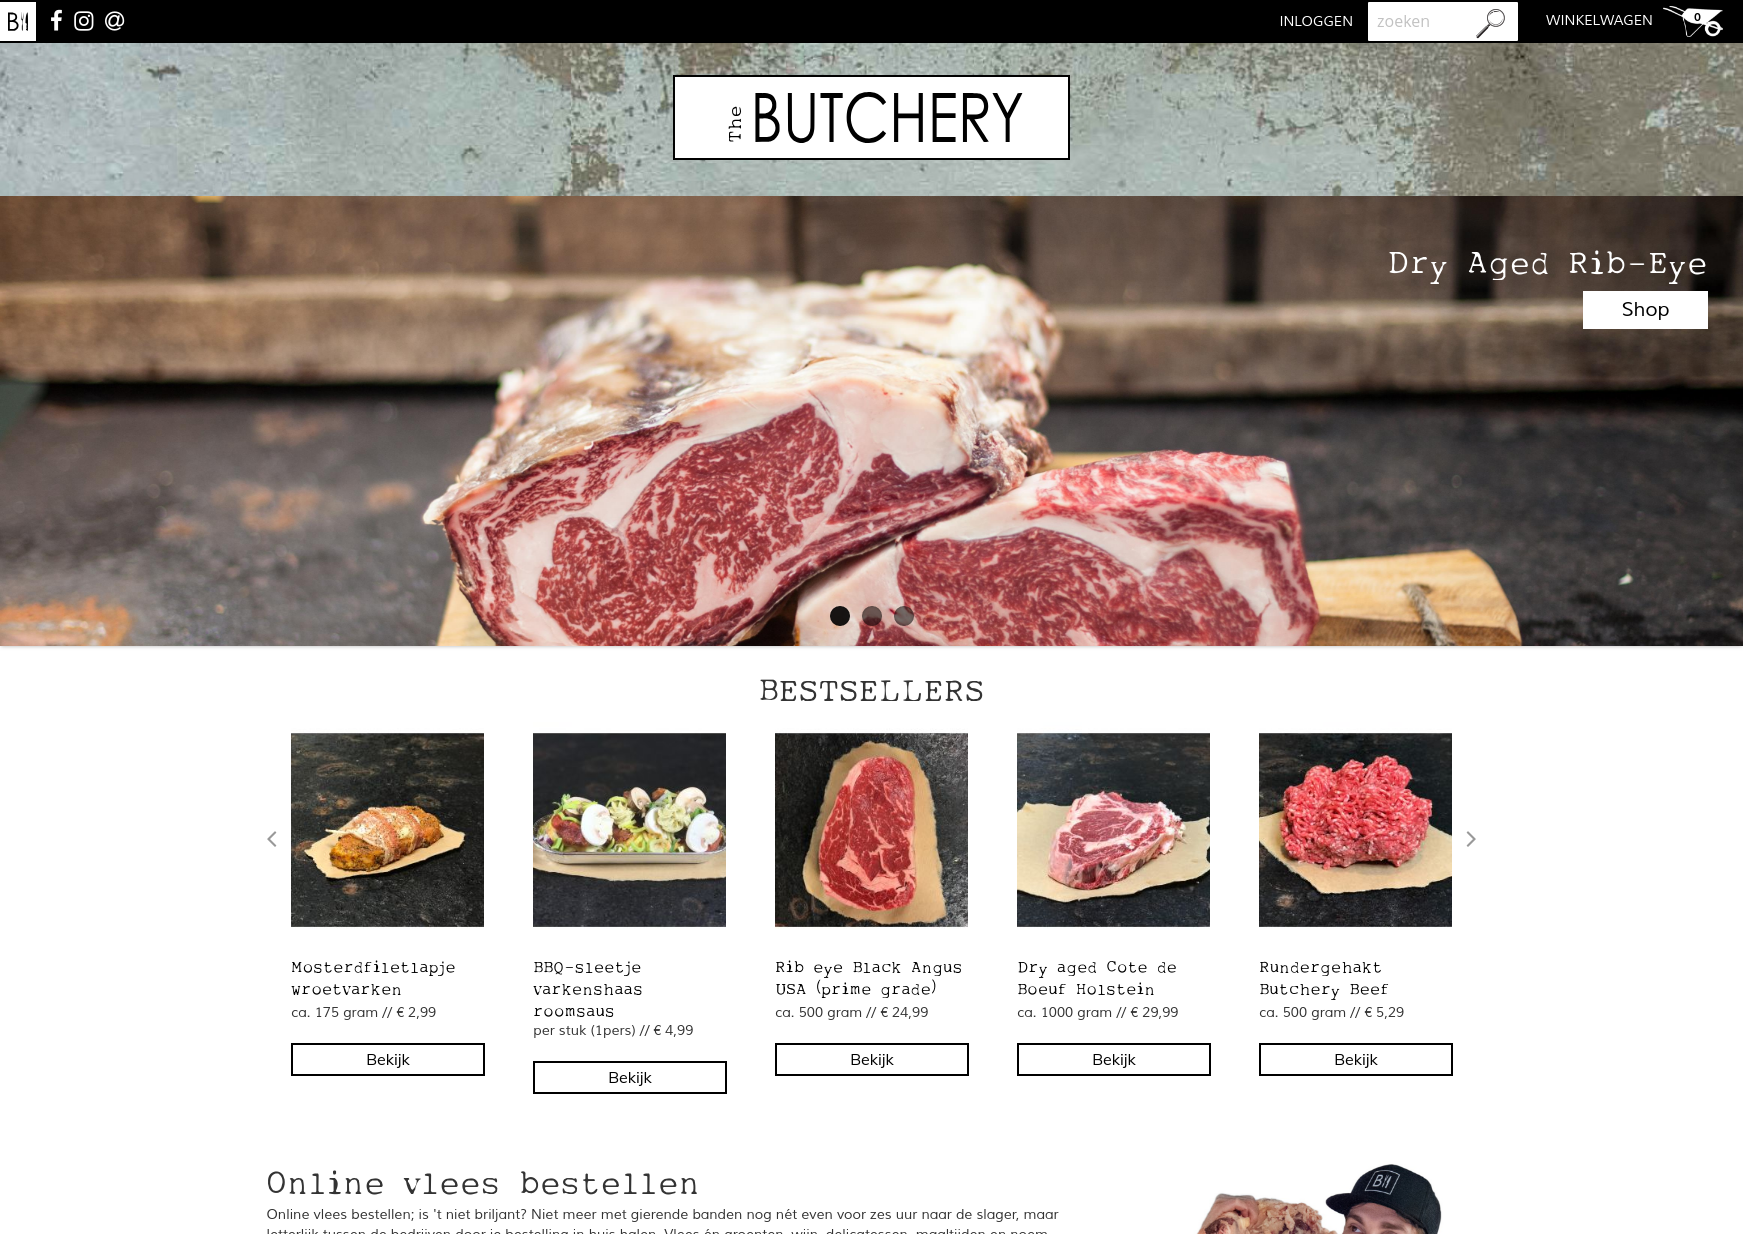 Butchery Is The Online Presence Of A Dutch Butcher Thats Aiming To Grow Quickly And End Up Being Largest Butchers In Country